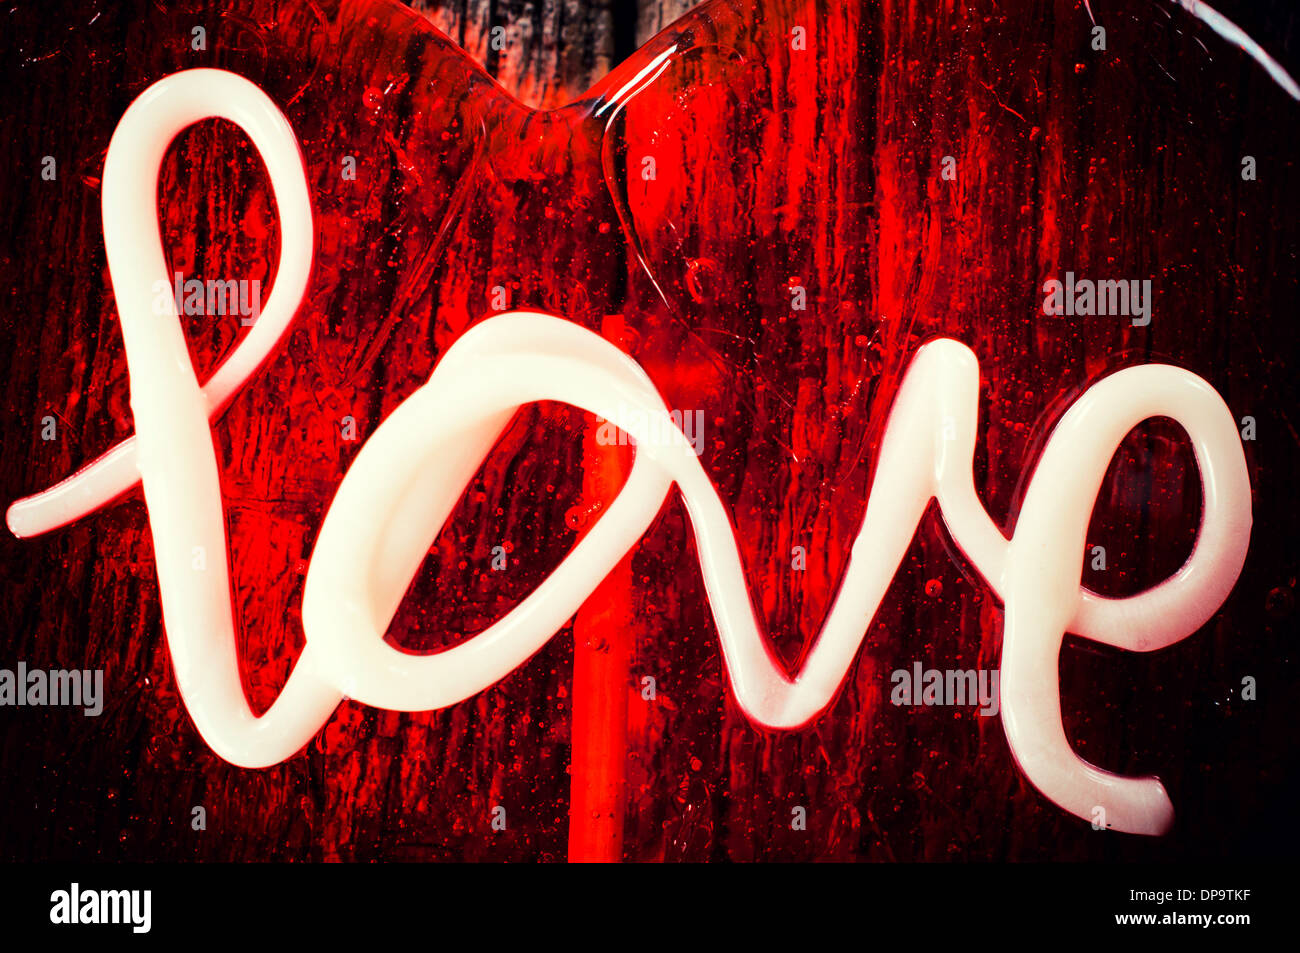 Love letters on the abstract red background - Stock Image